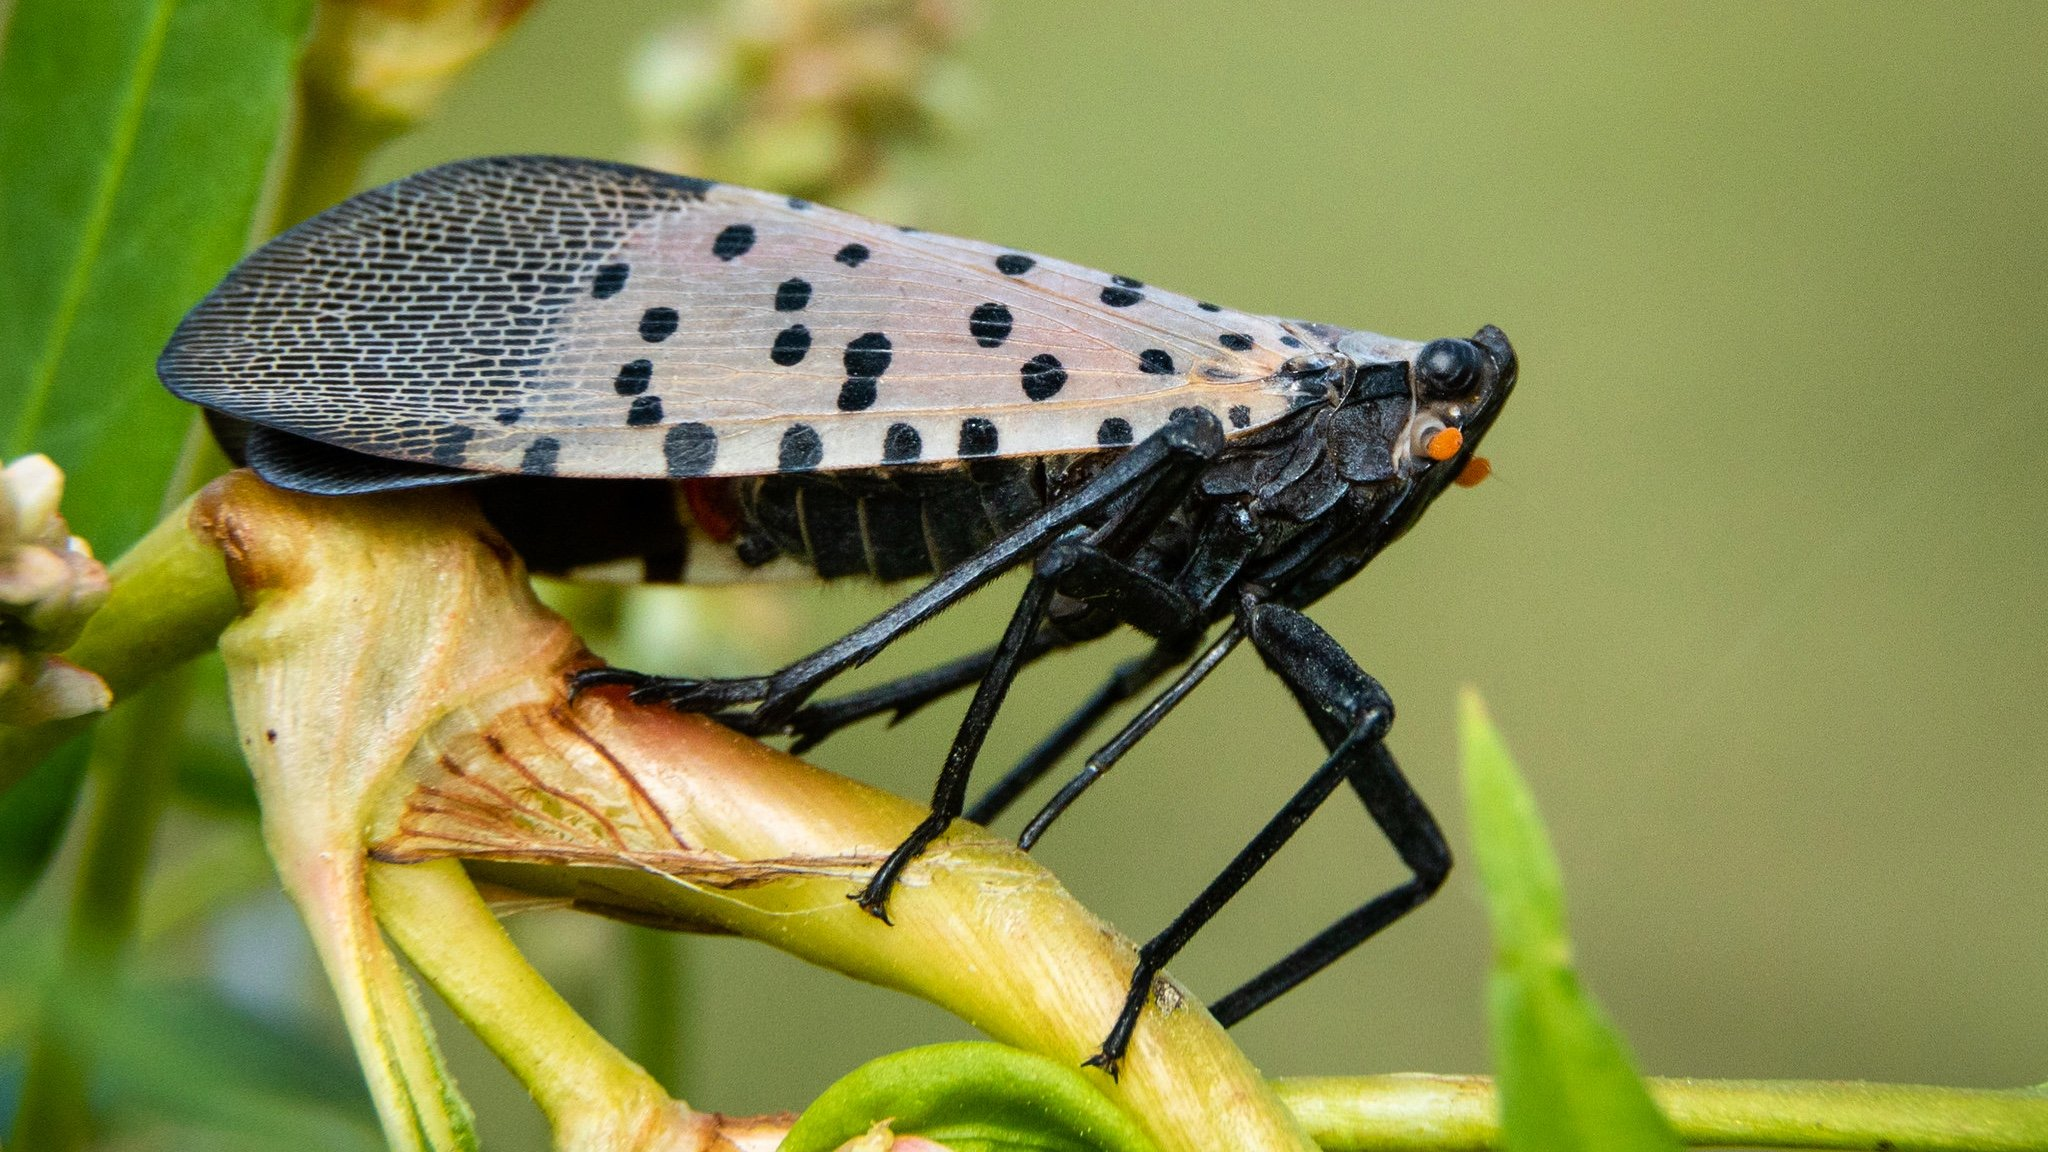 Be on the lookout for the spotted lanternfly, which threatens a host of fruit trees and plants. (Chesapeake Bay Program / Flickr)